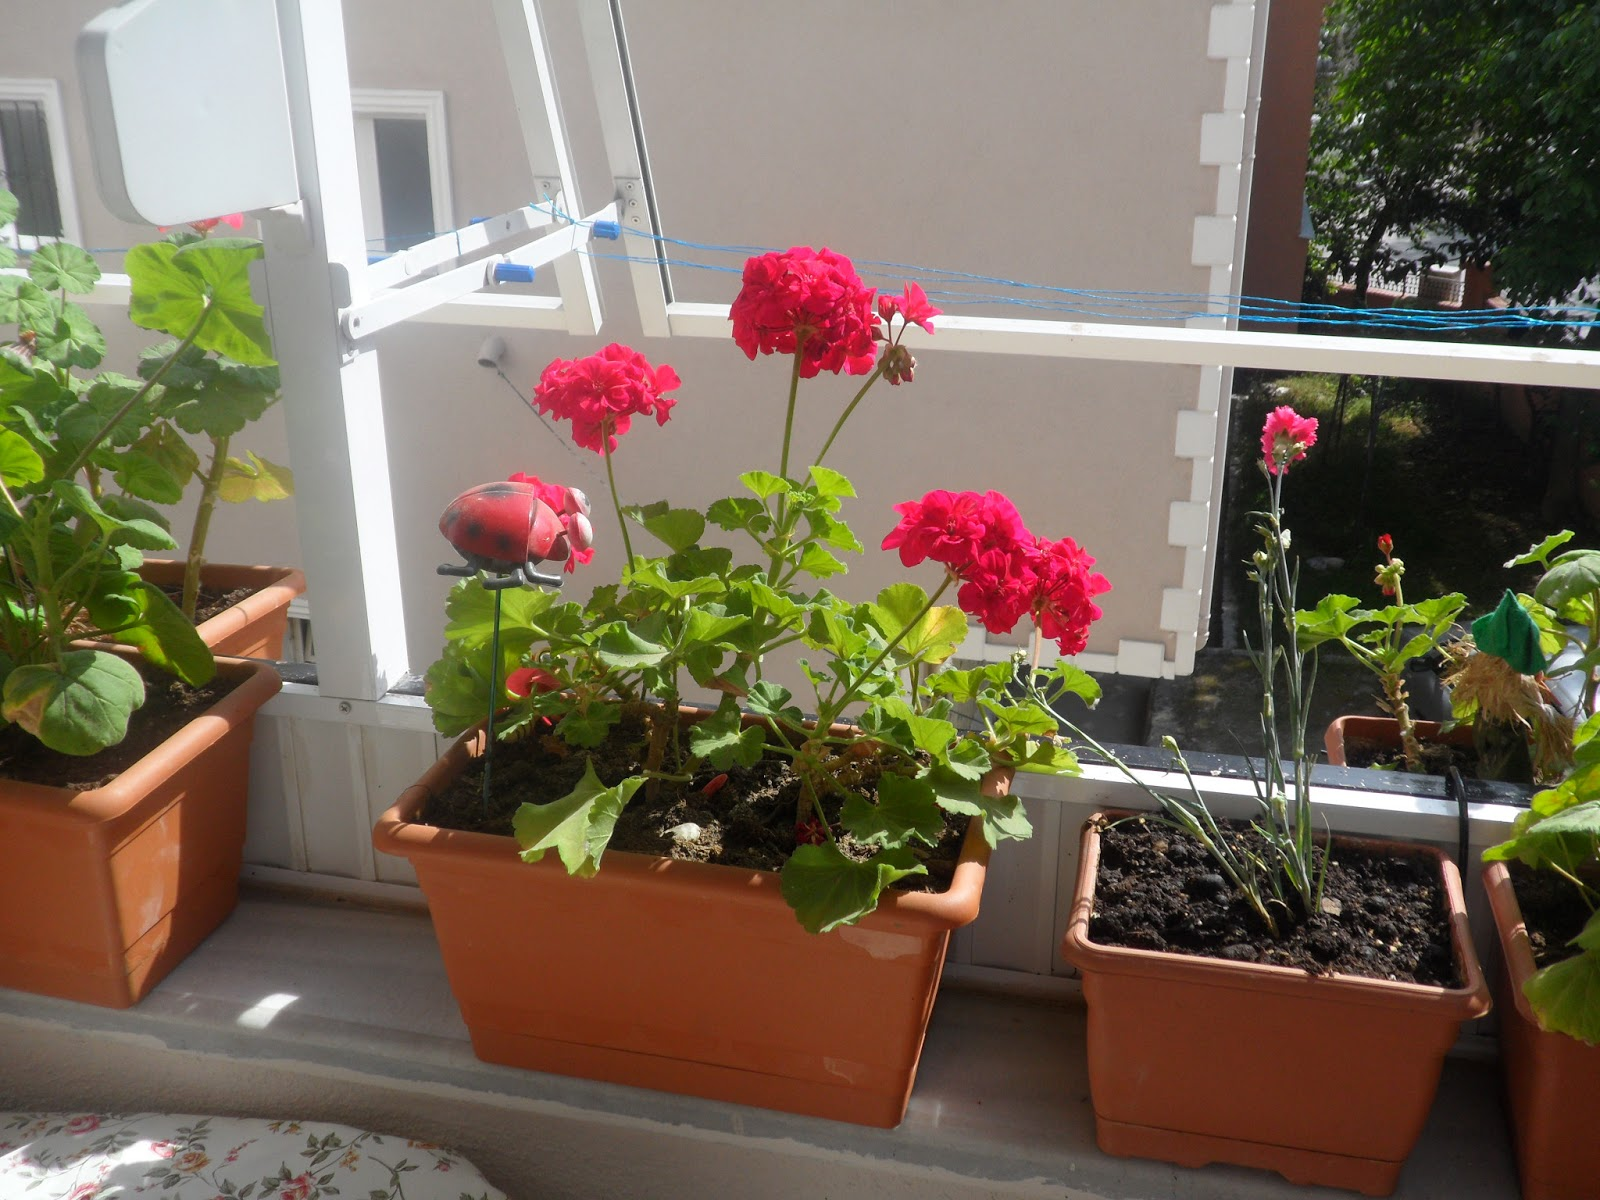 Apartment Balcony Flowers: Wonderful balcony garden ideas to bring ...